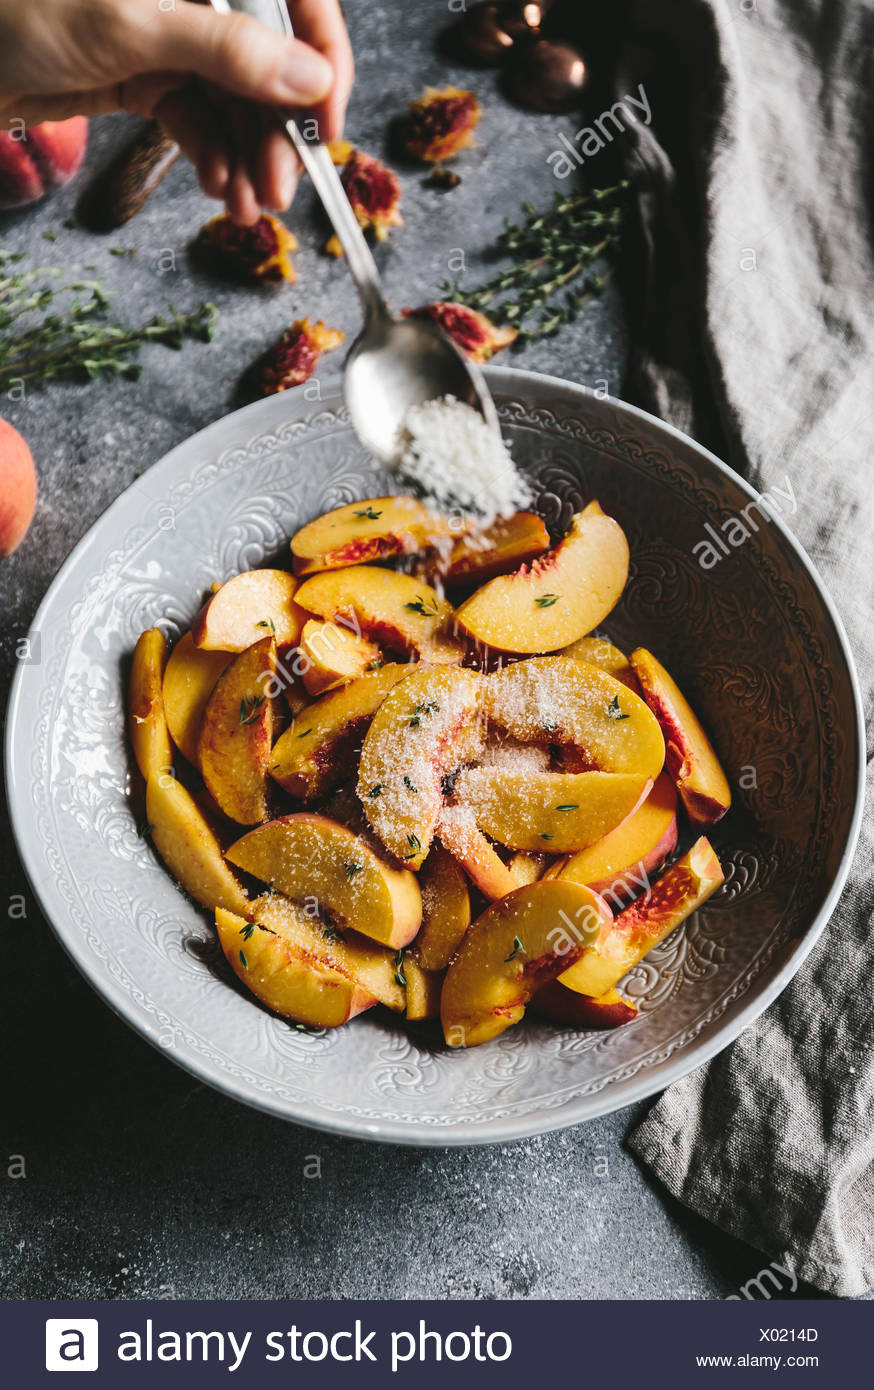 A woman is sprinkling sugar over sliced peaches. - Stock Image